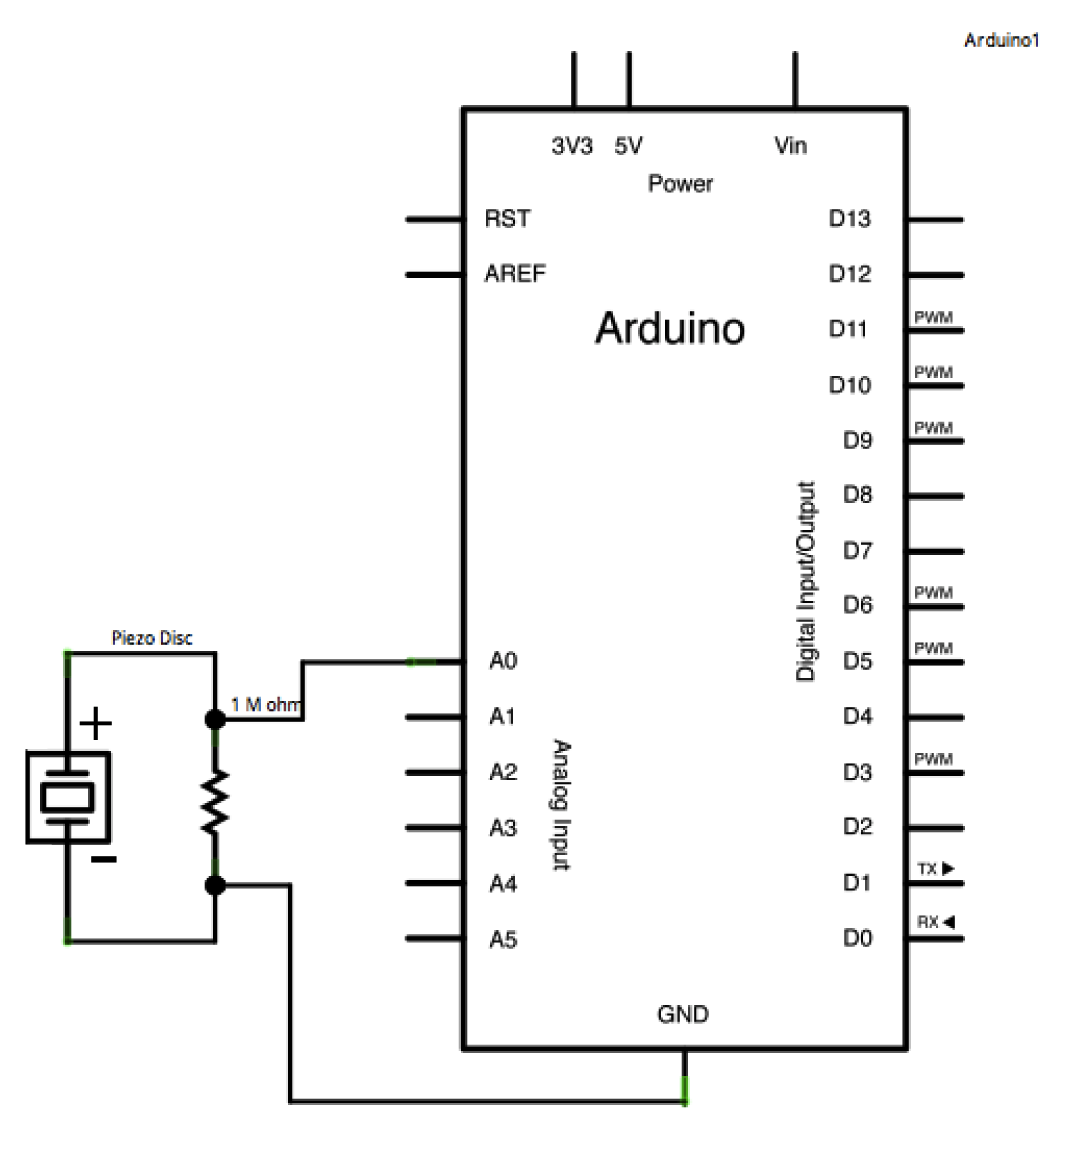 Piezo Driver Circuit Diagram 555 Guide And Troubleshooting Of Ic Pinout Diagrams Timer Astable Multivibrator Arduino Knock Pwm Ne Circuits